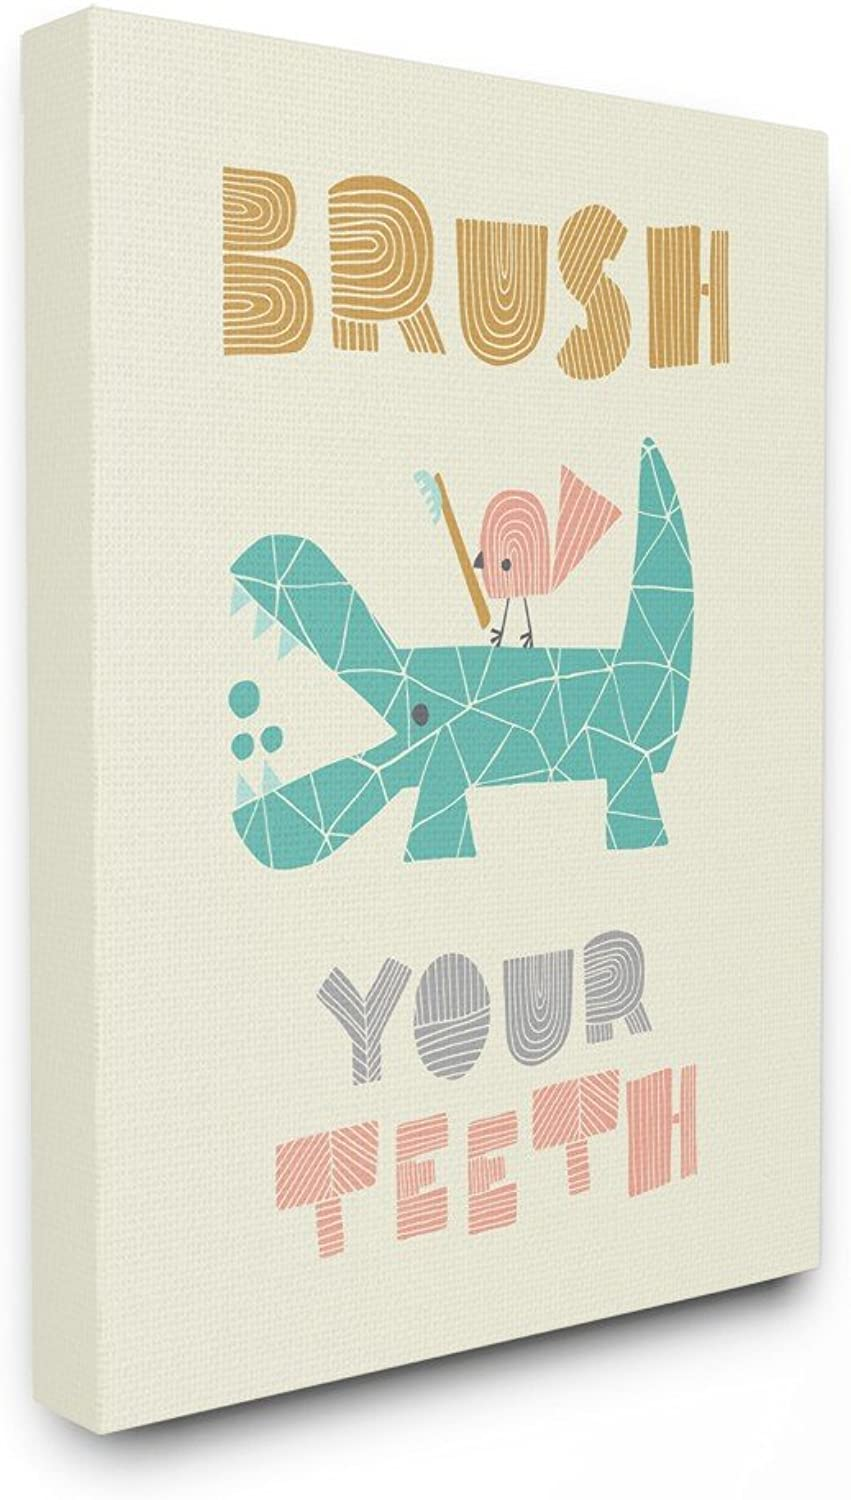 The Kids Room by Stupel Brush Your Teeth Mod Crocodile Stretched Canvas Wall Art, 16 x 20, Multicolor